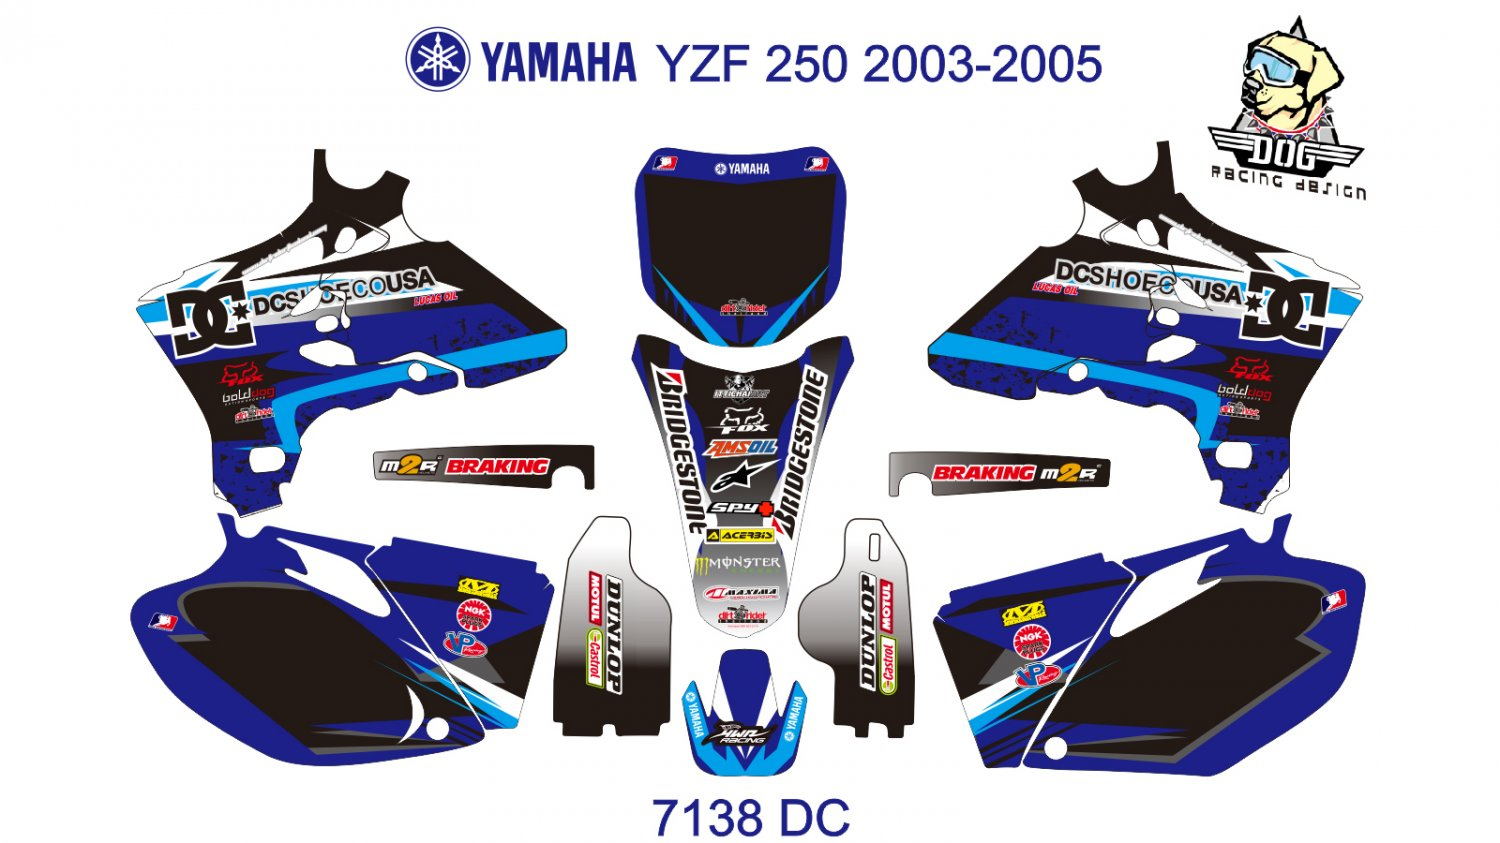 YAMAHA YZF 250 2003-2005 GRAPHIC DECAL KIT CODE.7138